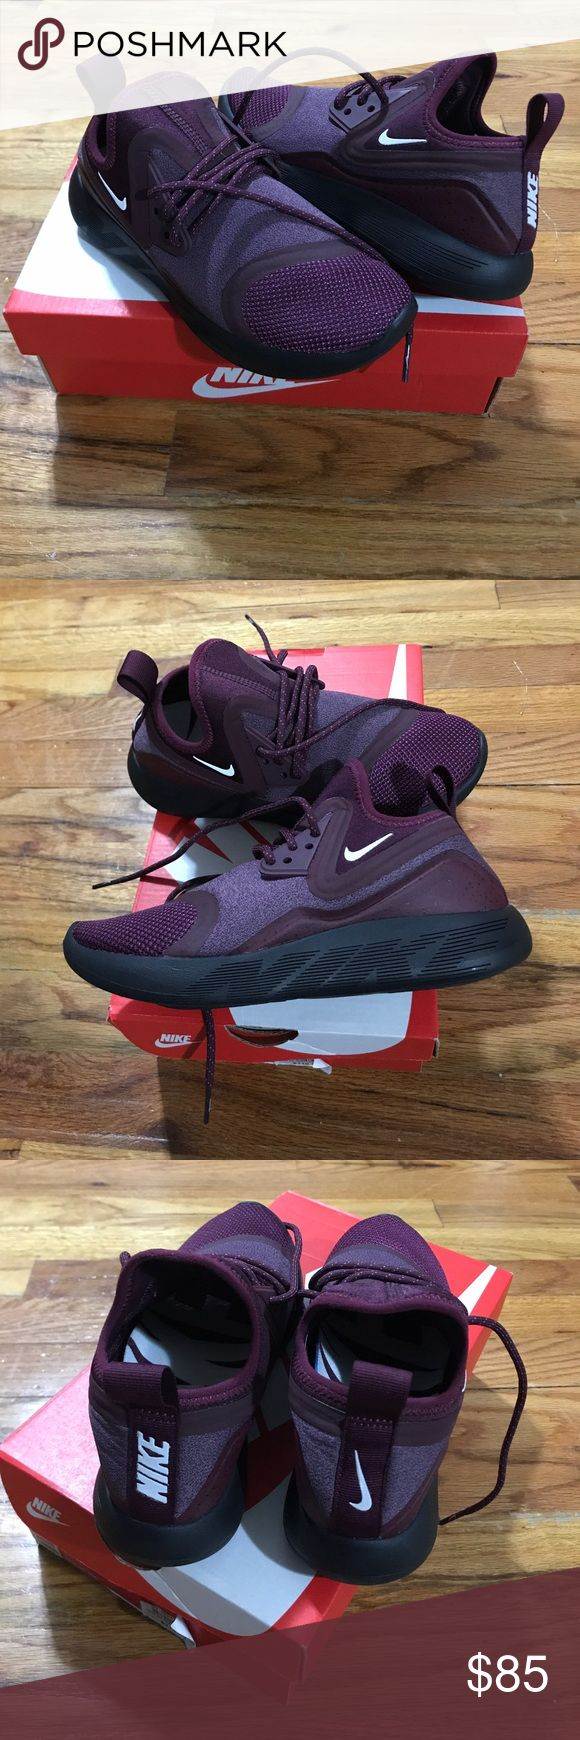 NIKE LUNARCHARGE ESSENTIAL SHOES 5.5 US The condition is brand new, never worn. Color night maroon/ violet dust (more like burgundy). Cushioned rubber outsole. My shoe size is 5.5 but these run small. These feel more like a size 5! Nike Shoes Sneakers